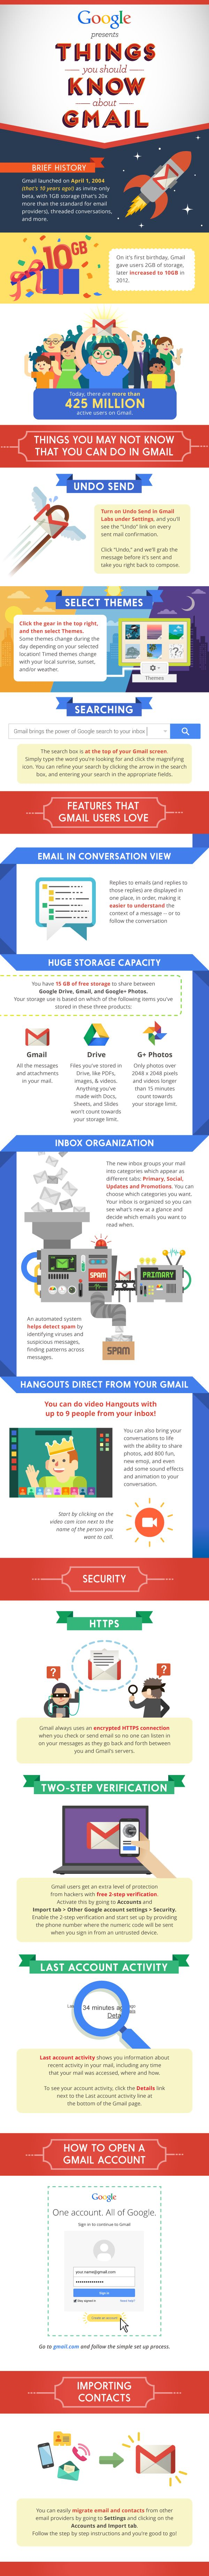 Things you should Know about Gmail #infographic  http://www.wonderoftech.com/gmail-infographic/